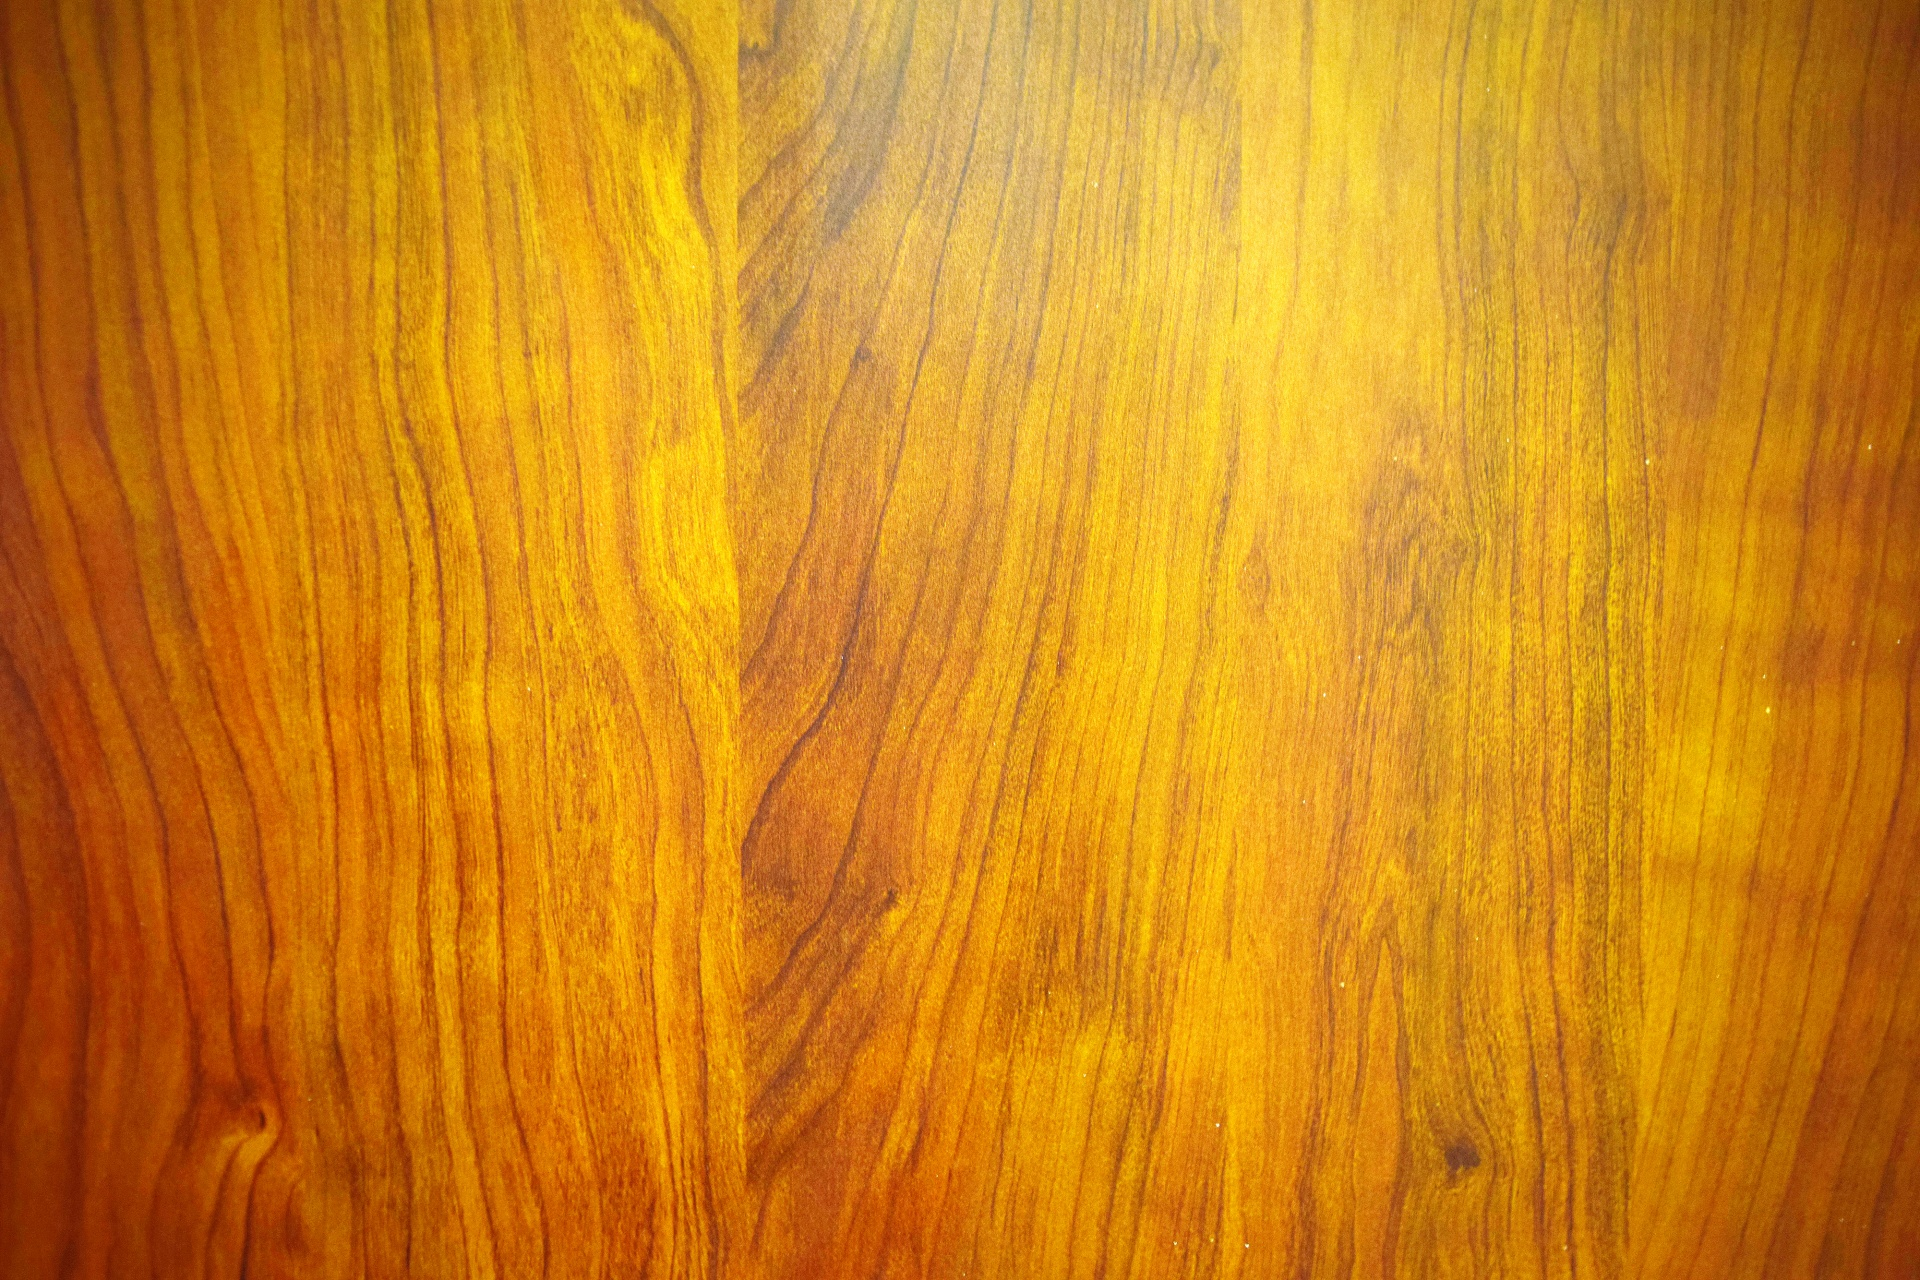 Wooden Texture Free Stock Photo - Public Domain Pictures